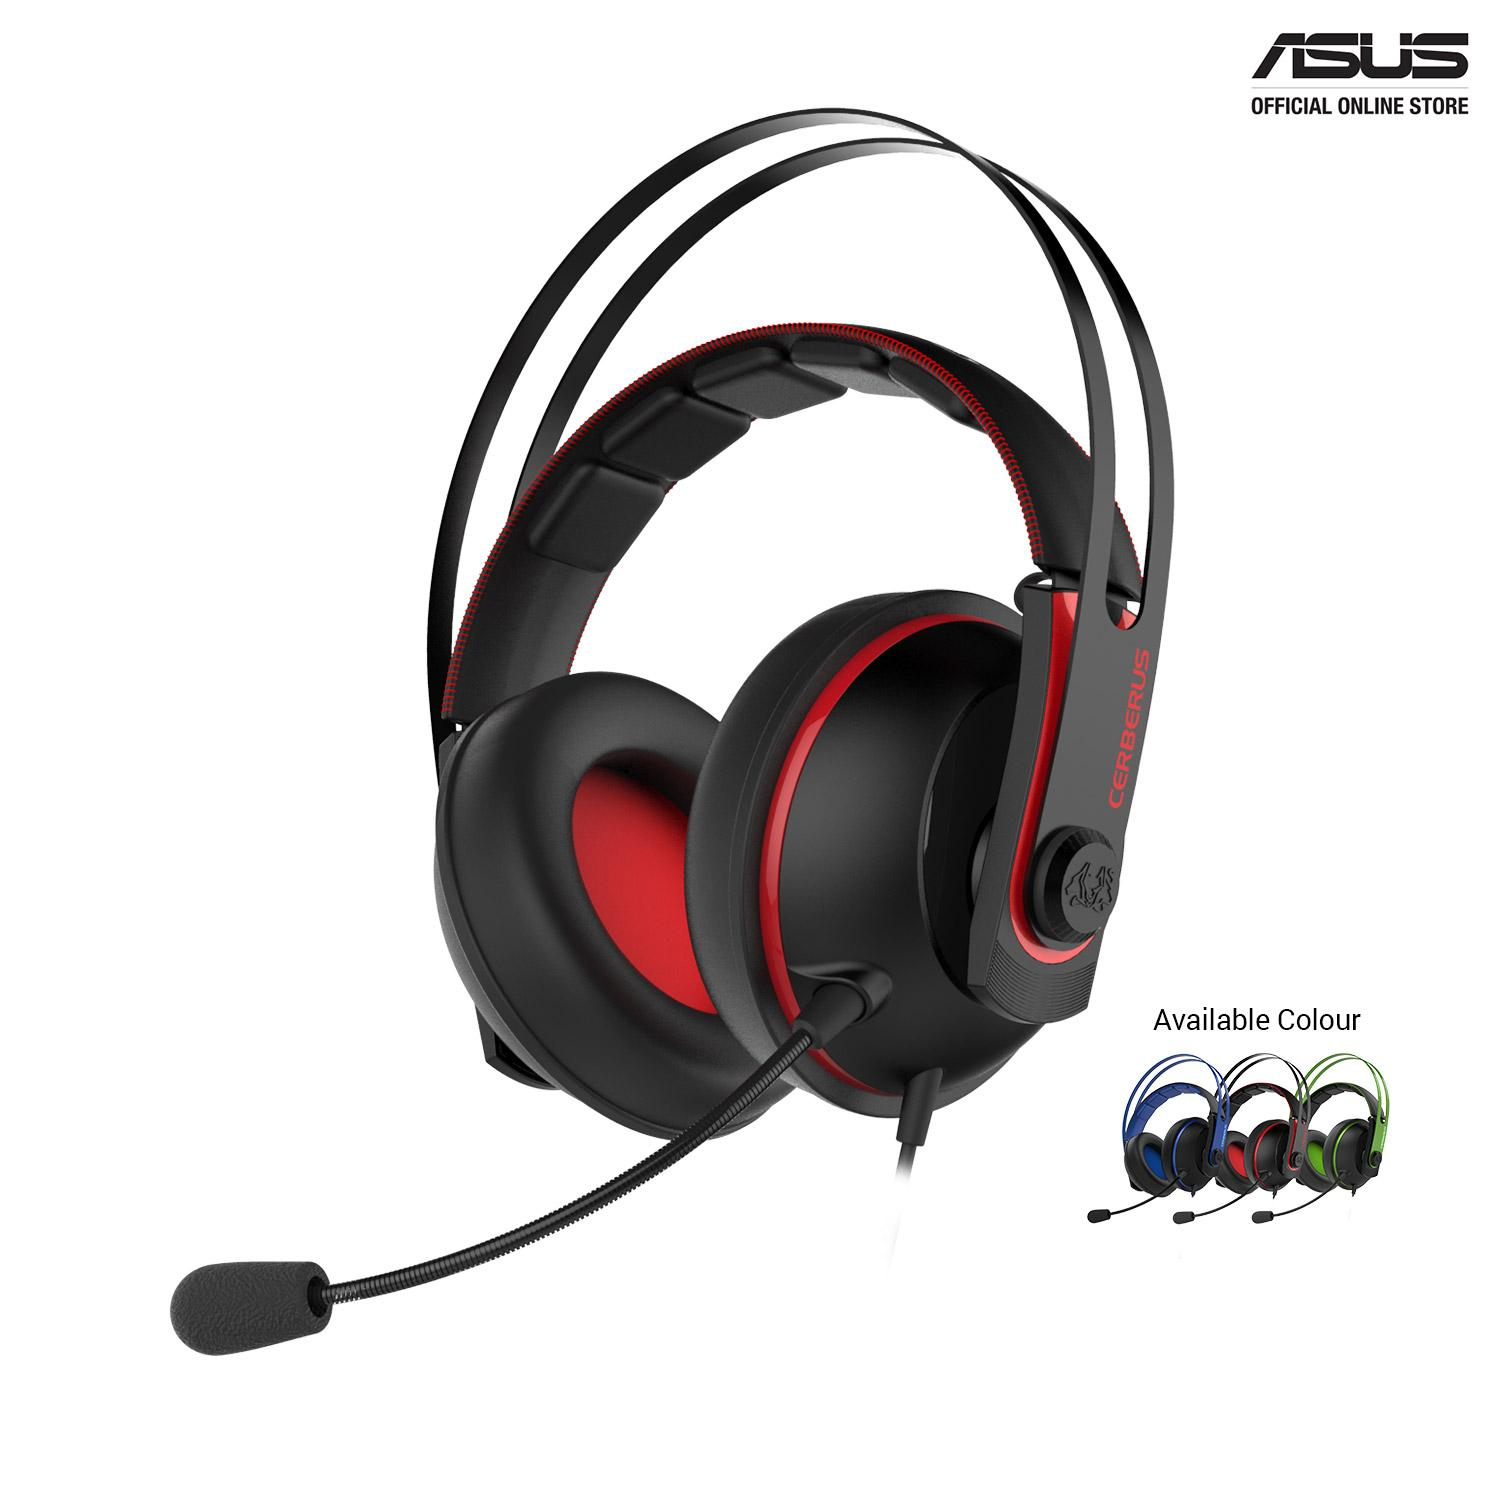 Cerberus V2 gaming headset with 53mm Asus Essence drivers, stainless-steel headband, and wrap-around ear cushions